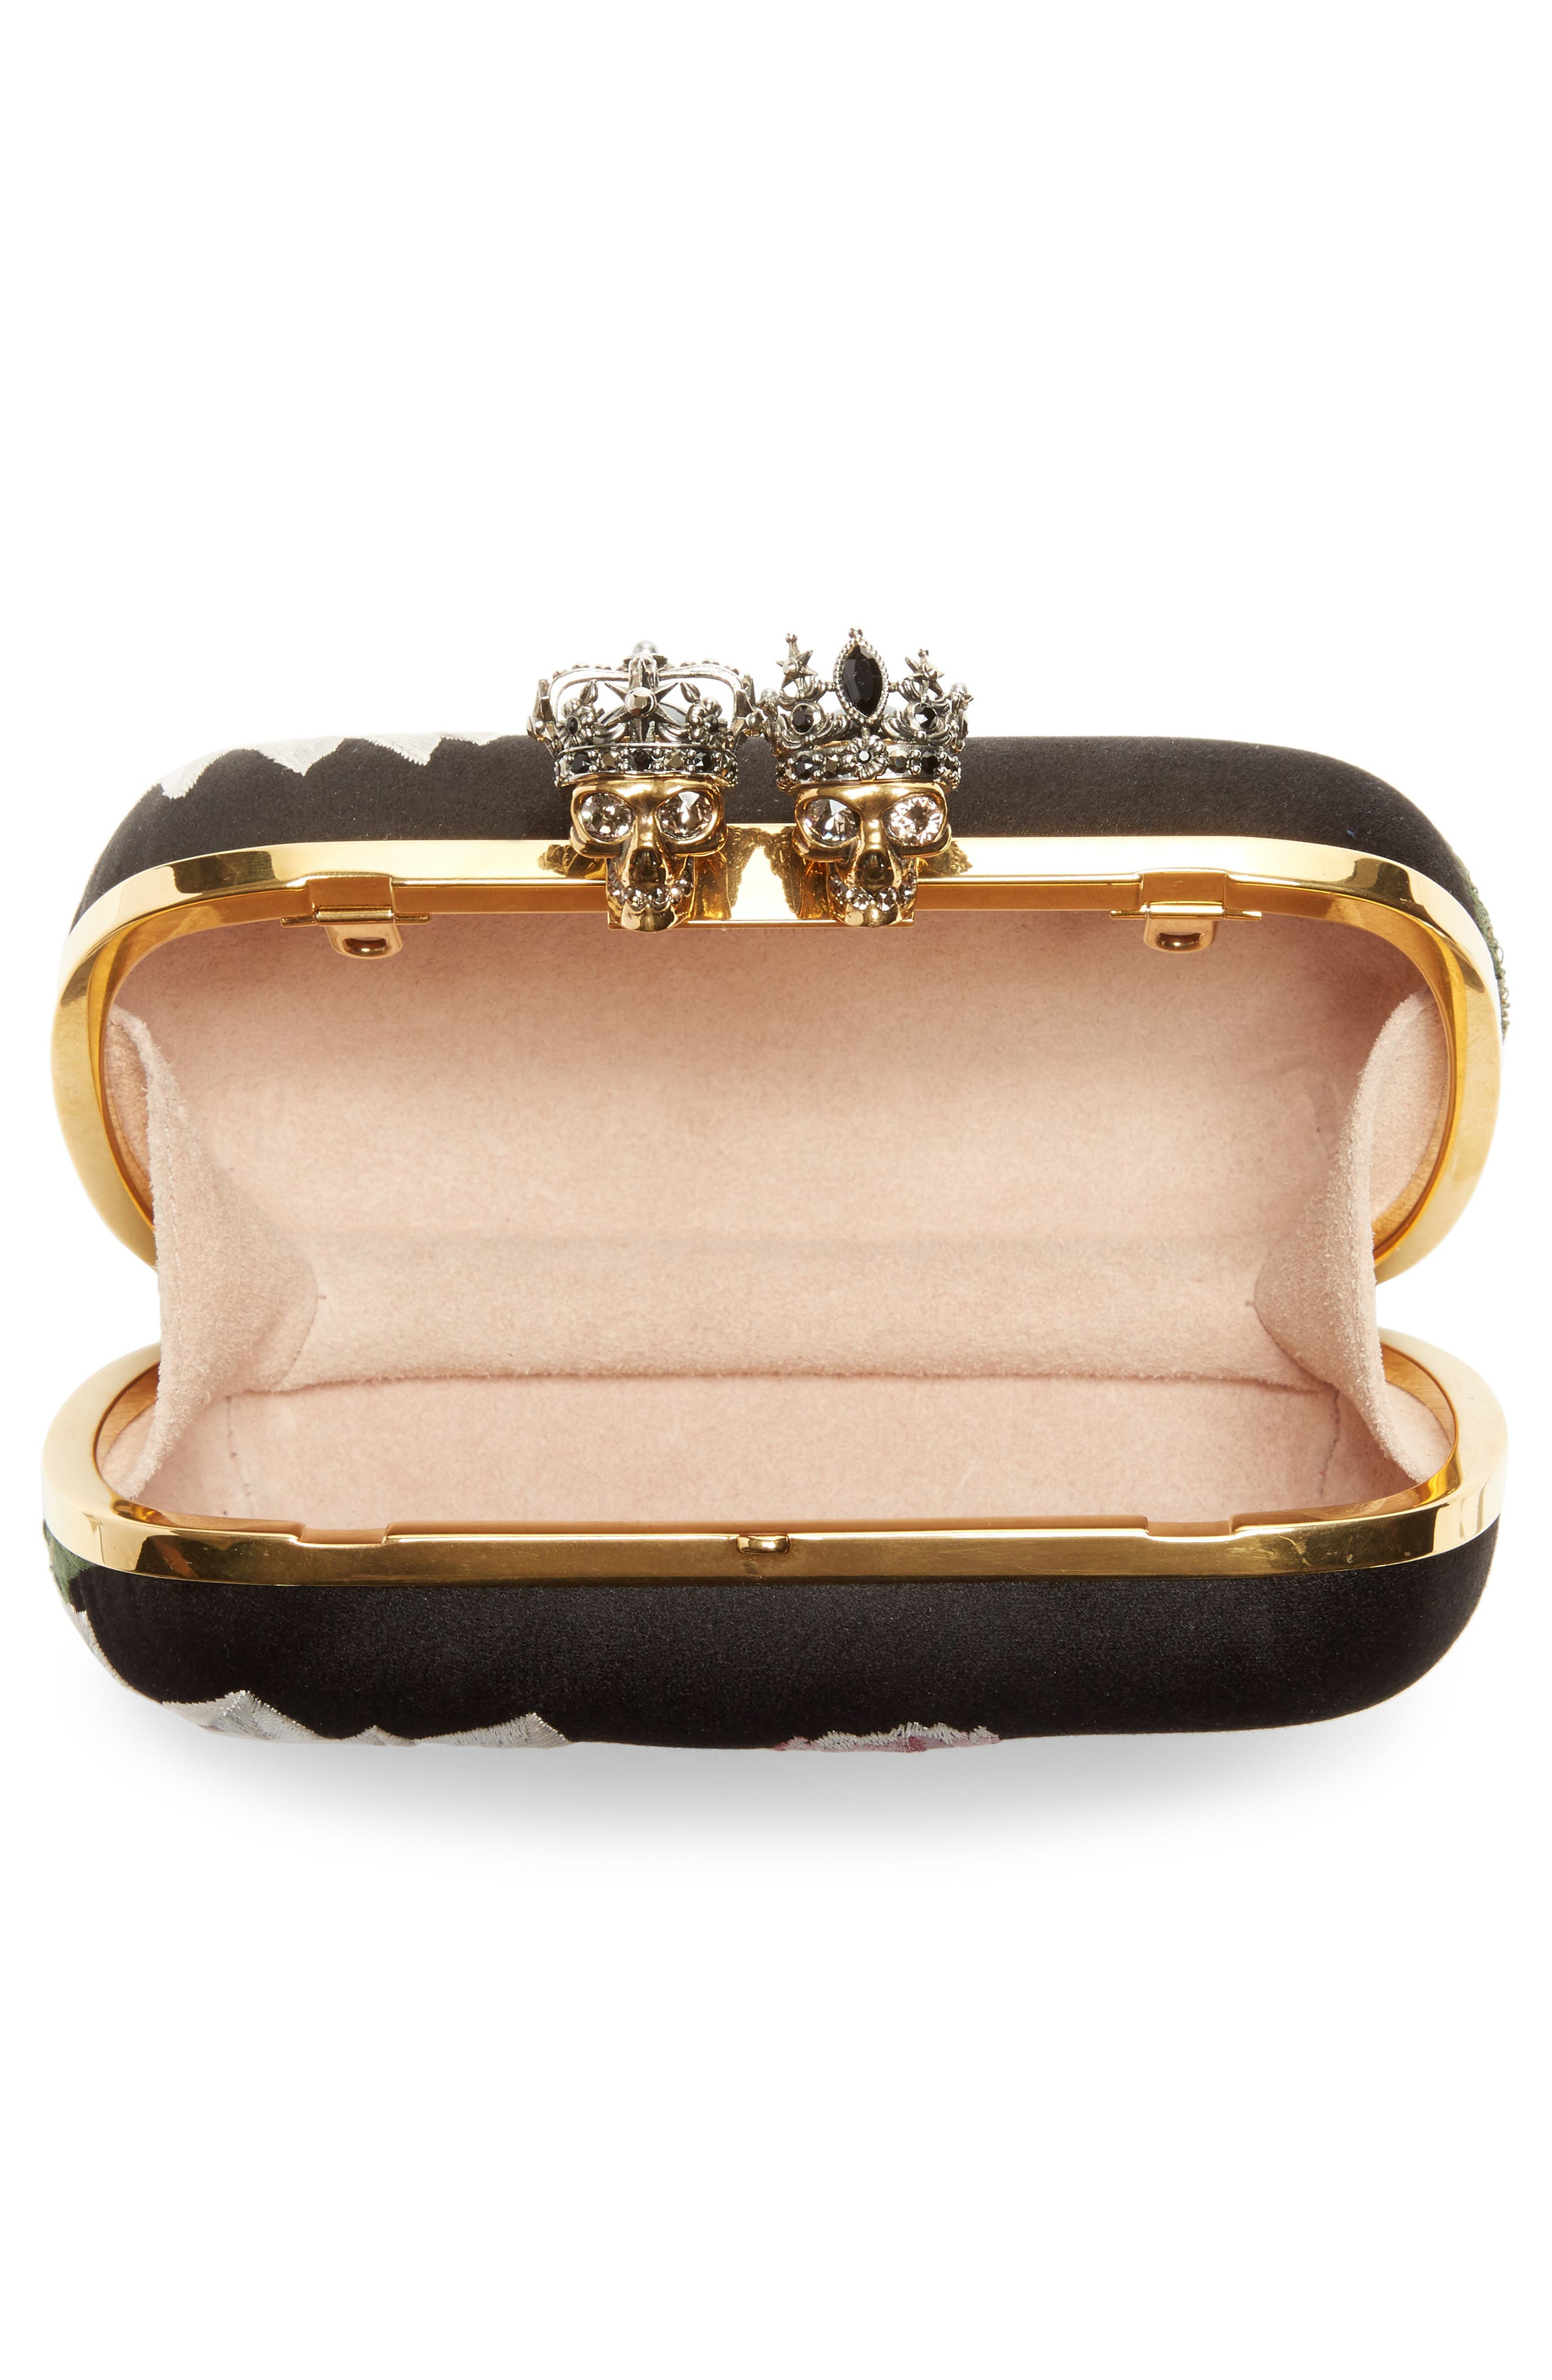 Queen & King Embroidered Satin Clutch,                             Alternate thumbnail 4, color,                             964